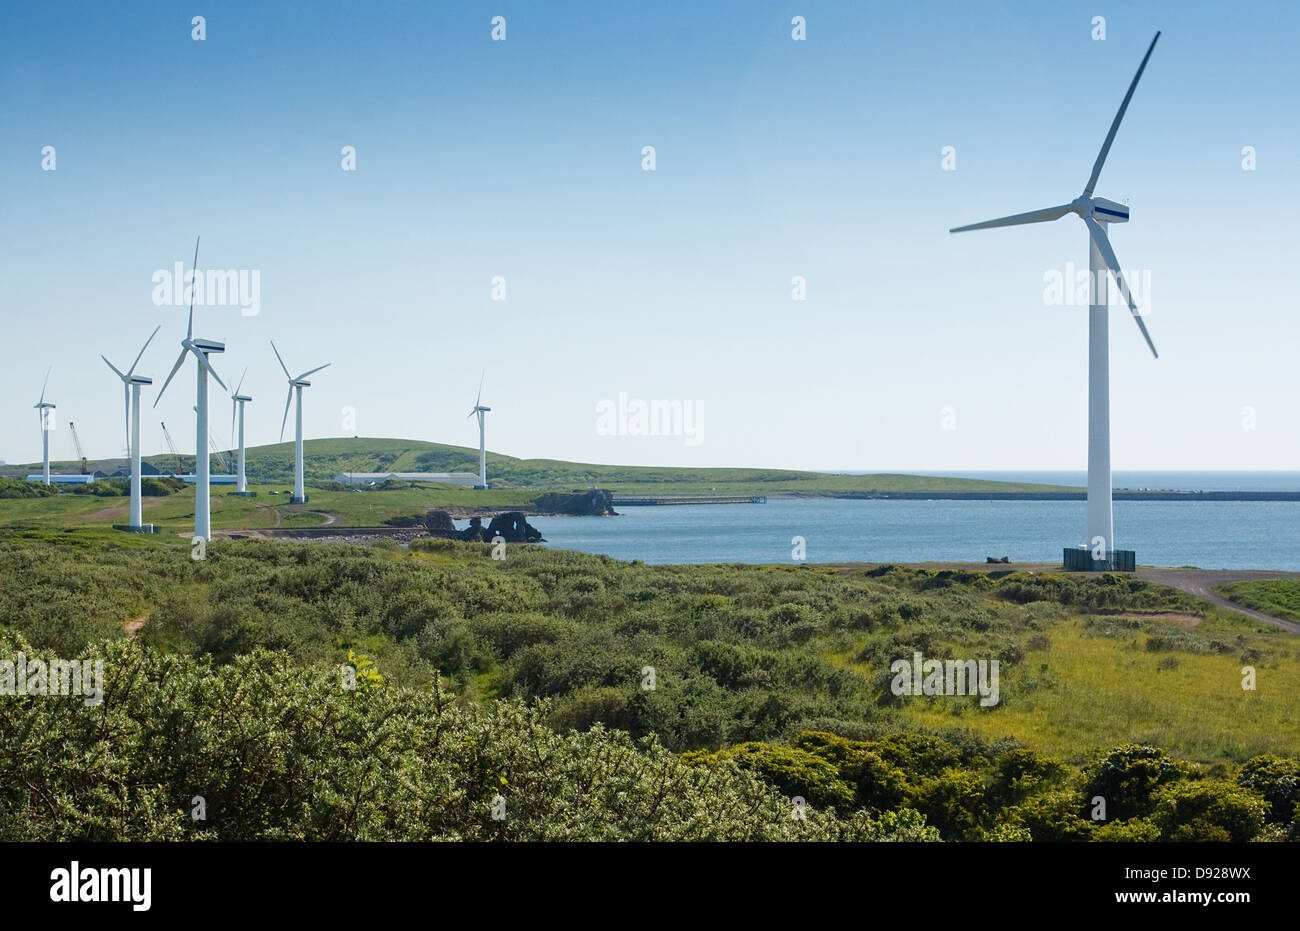 Coastal wind farm used to harness renewable wind power into mechanical energy to generate electricity. - Stock Image